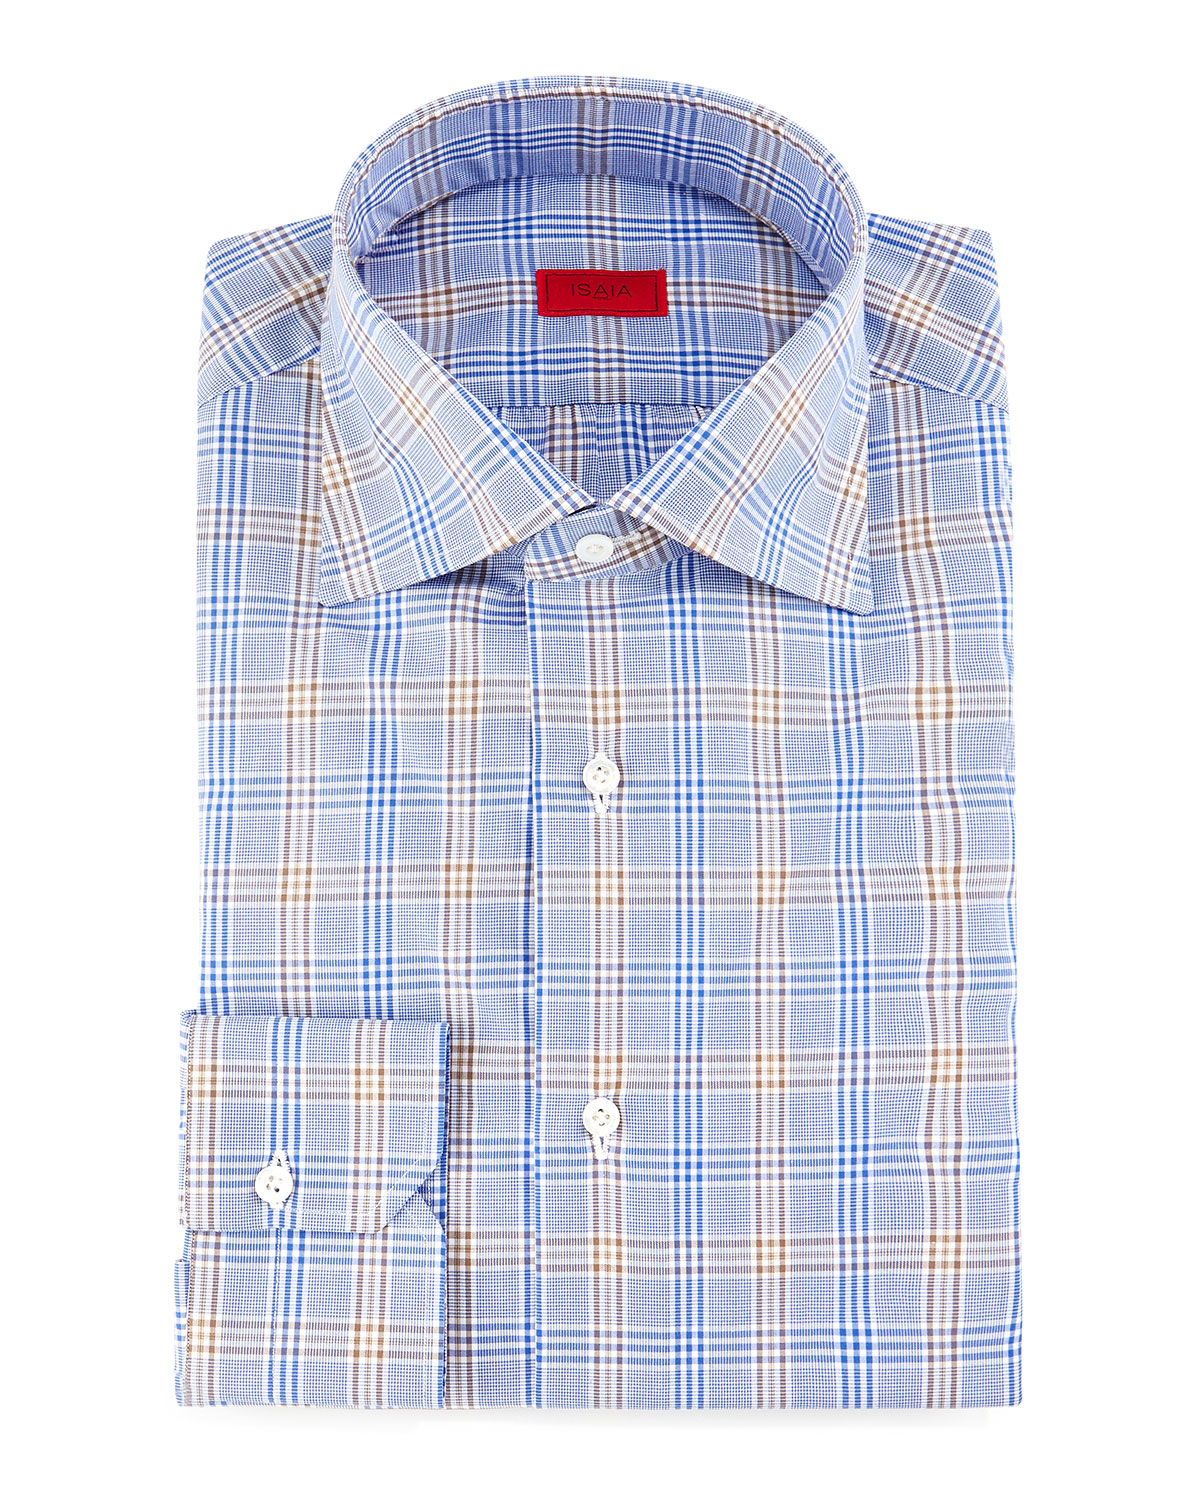 Lyst isaia check dress shirt in blue for men for Blue check dress shirt